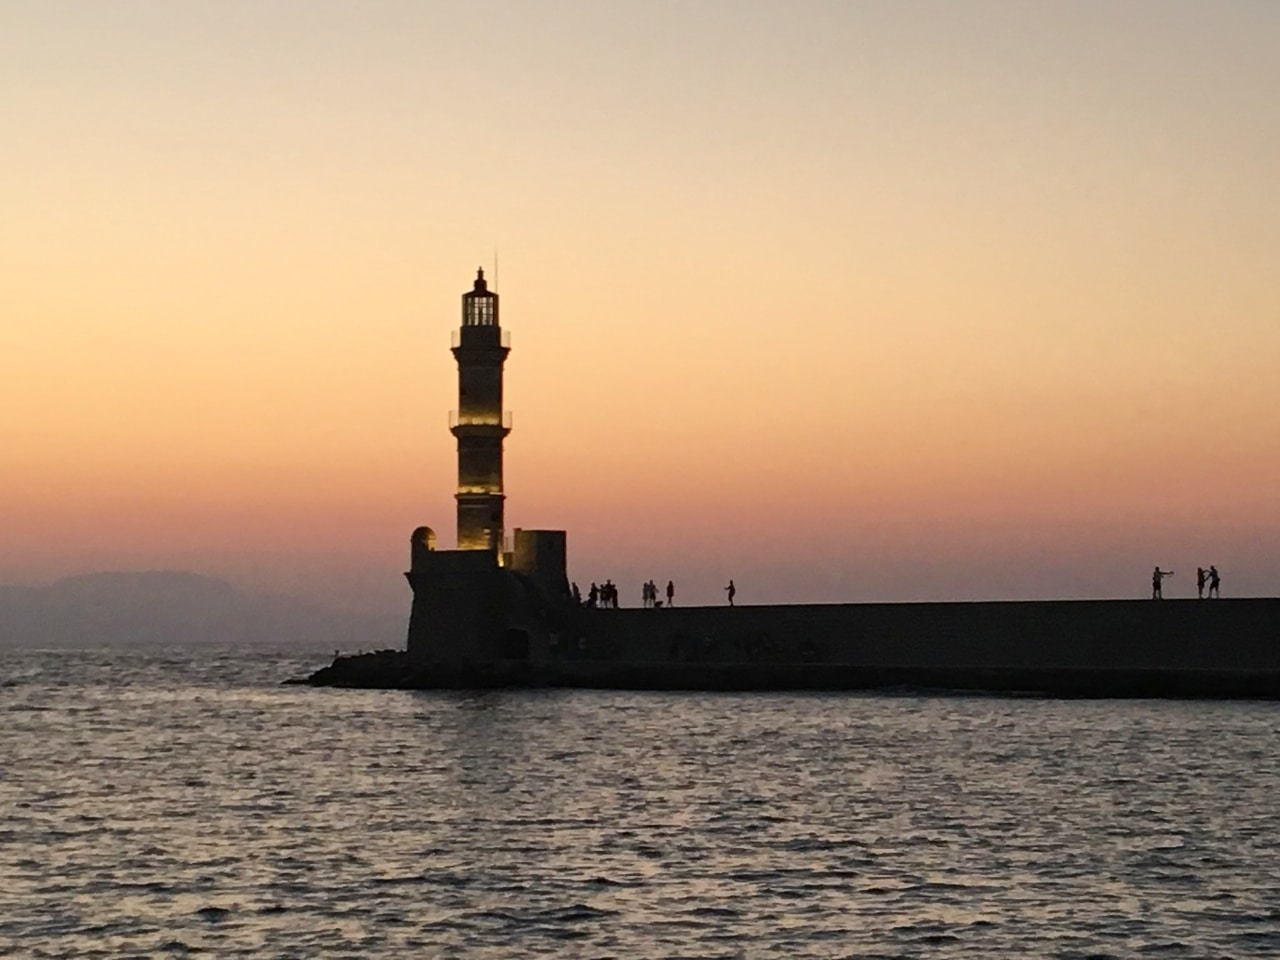 venetian lighthouse of chania, chania town